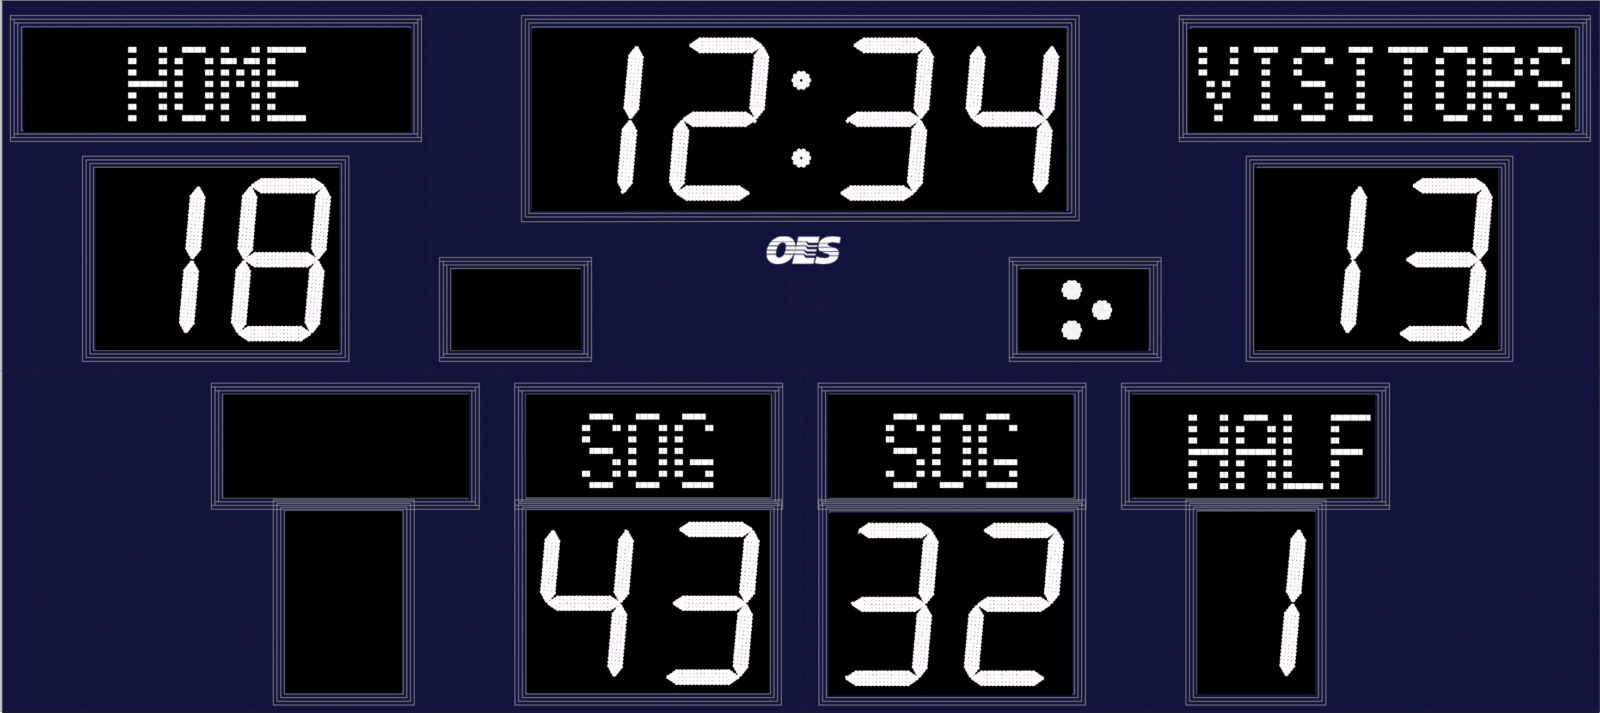 blue scoreboard with white text